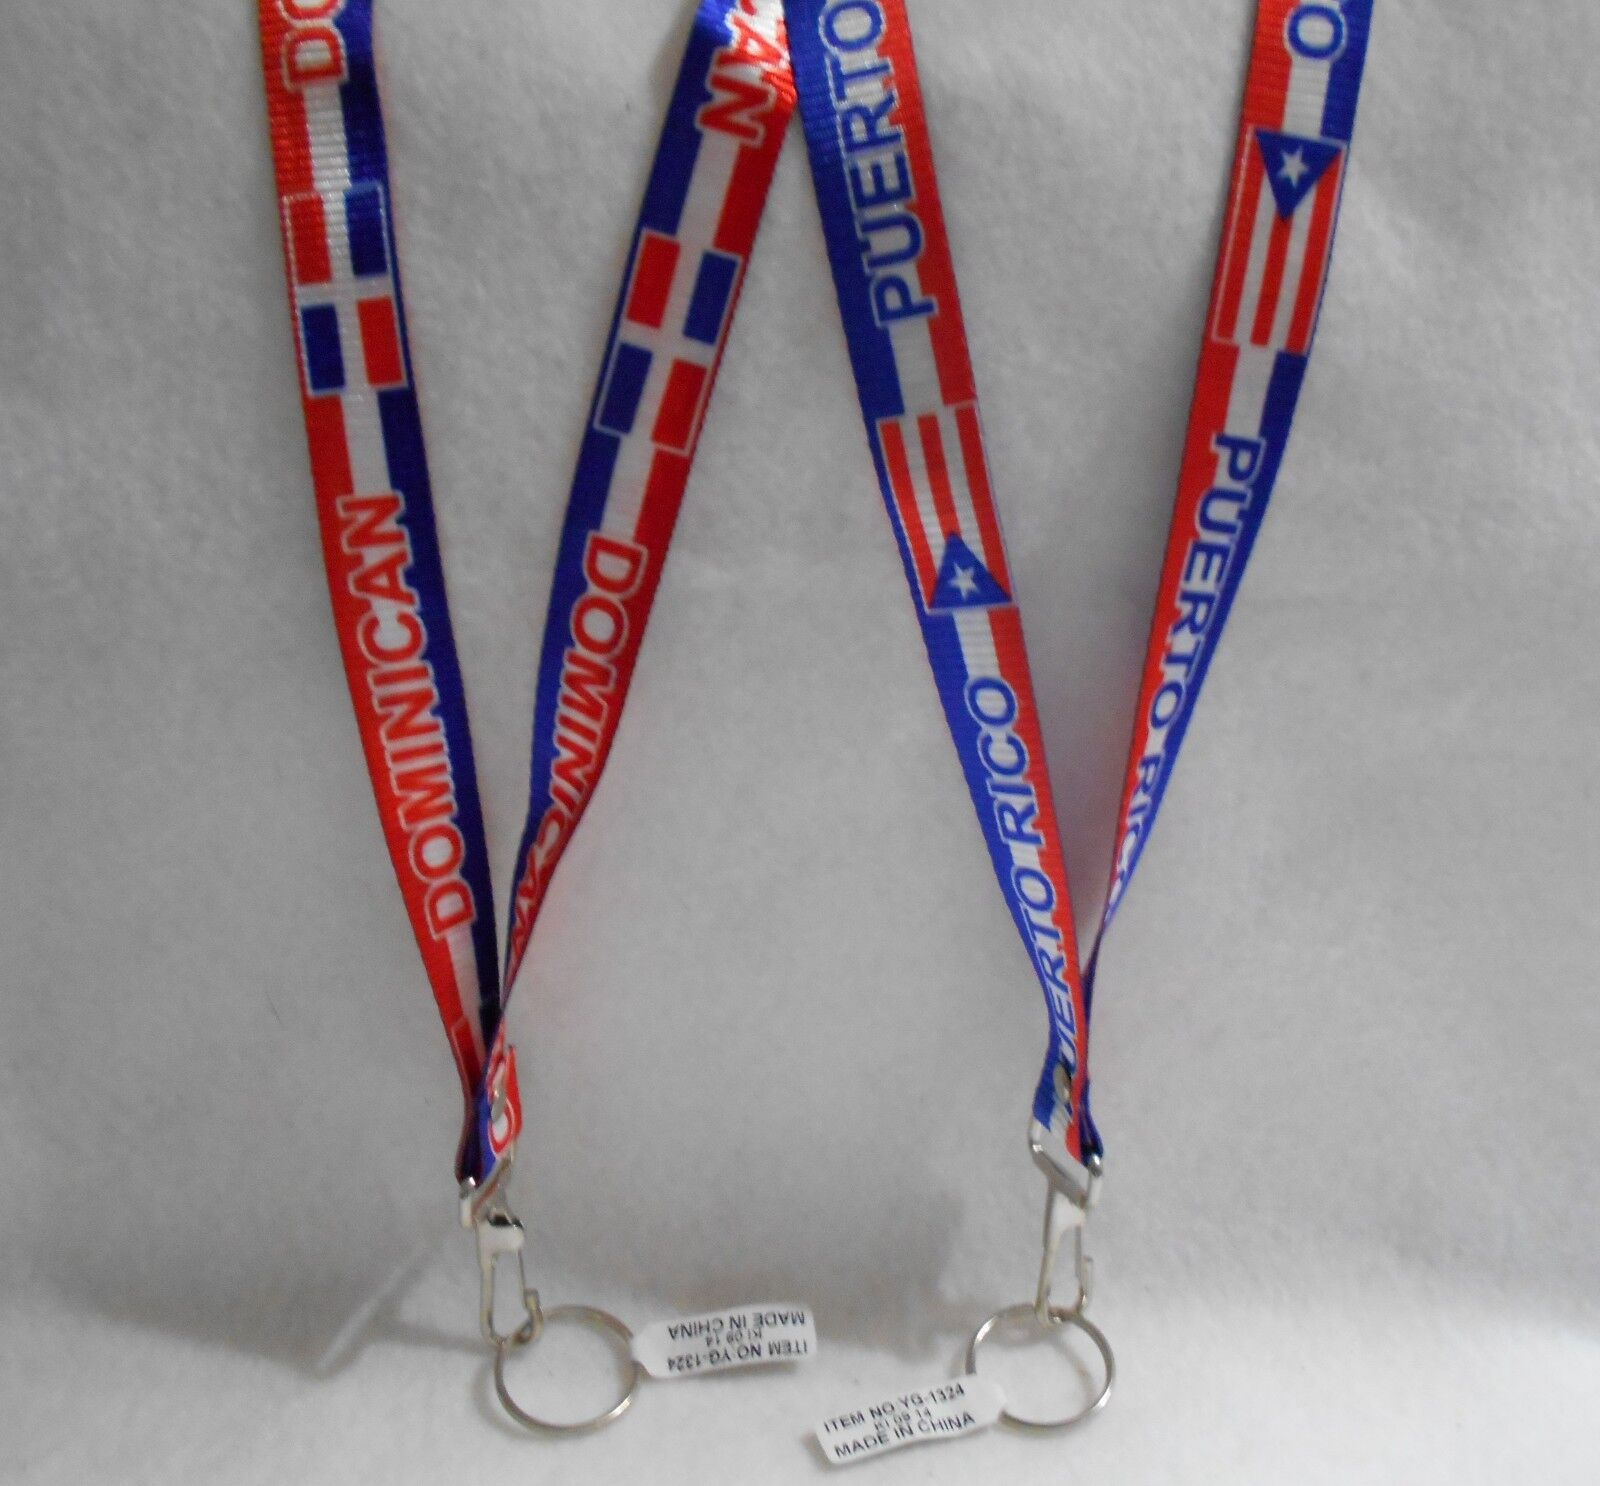 dominican republic or puerto rico flag lanyard key chain 22 inch